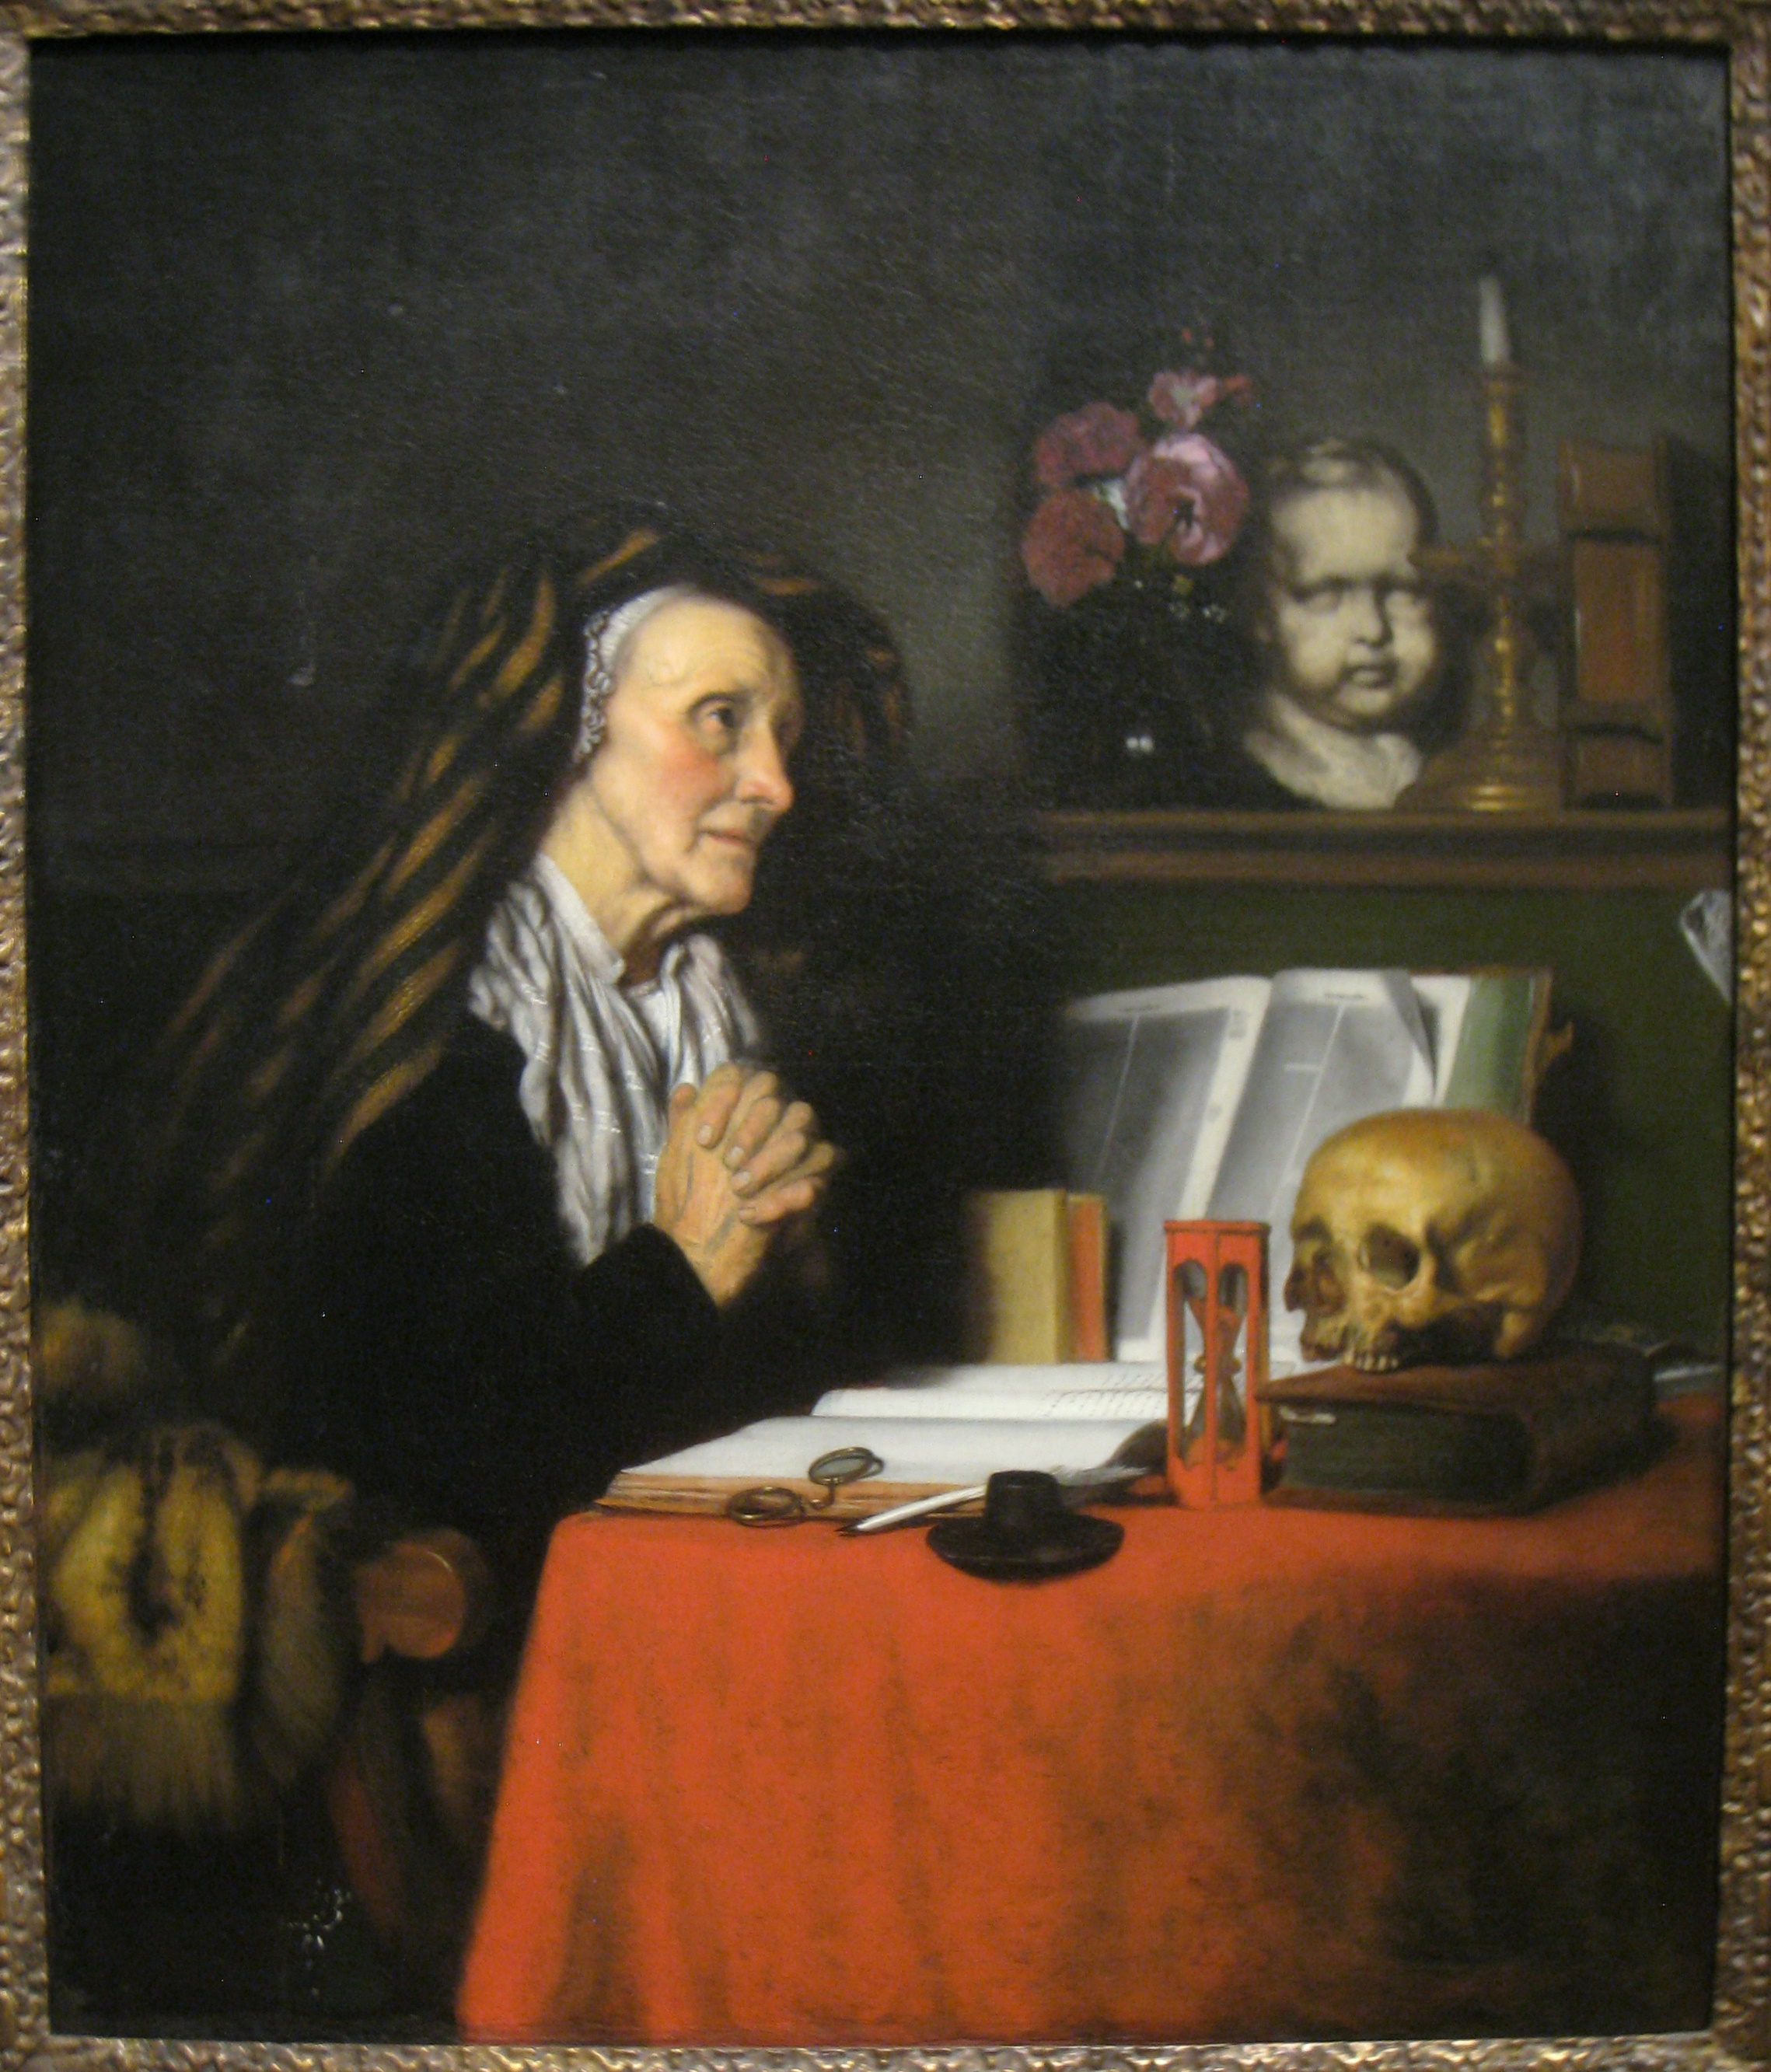 Old woman praying, painting by Nicolaes Maes